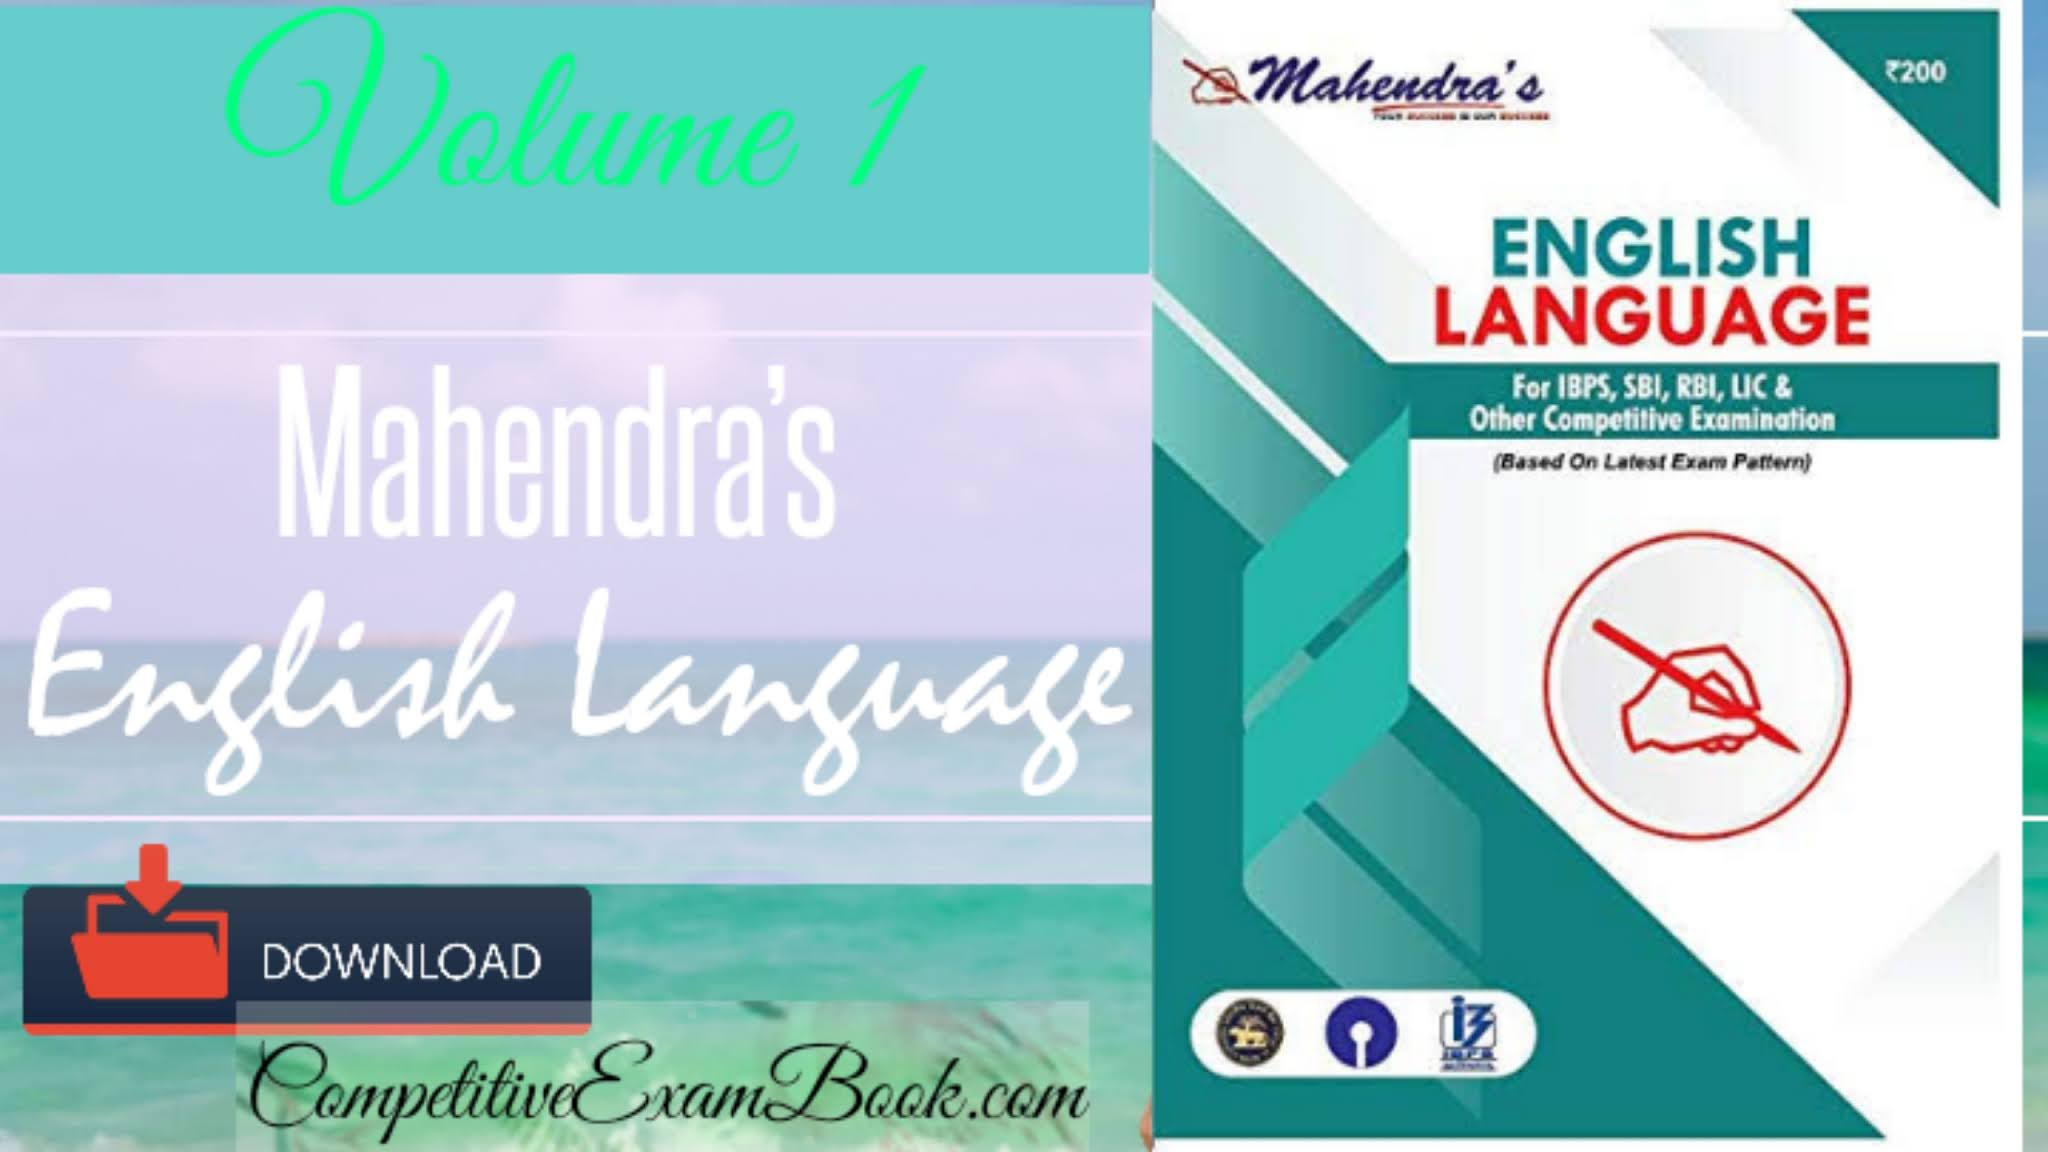 Mahendra's English Language Vol-1 PDF Book Free Download